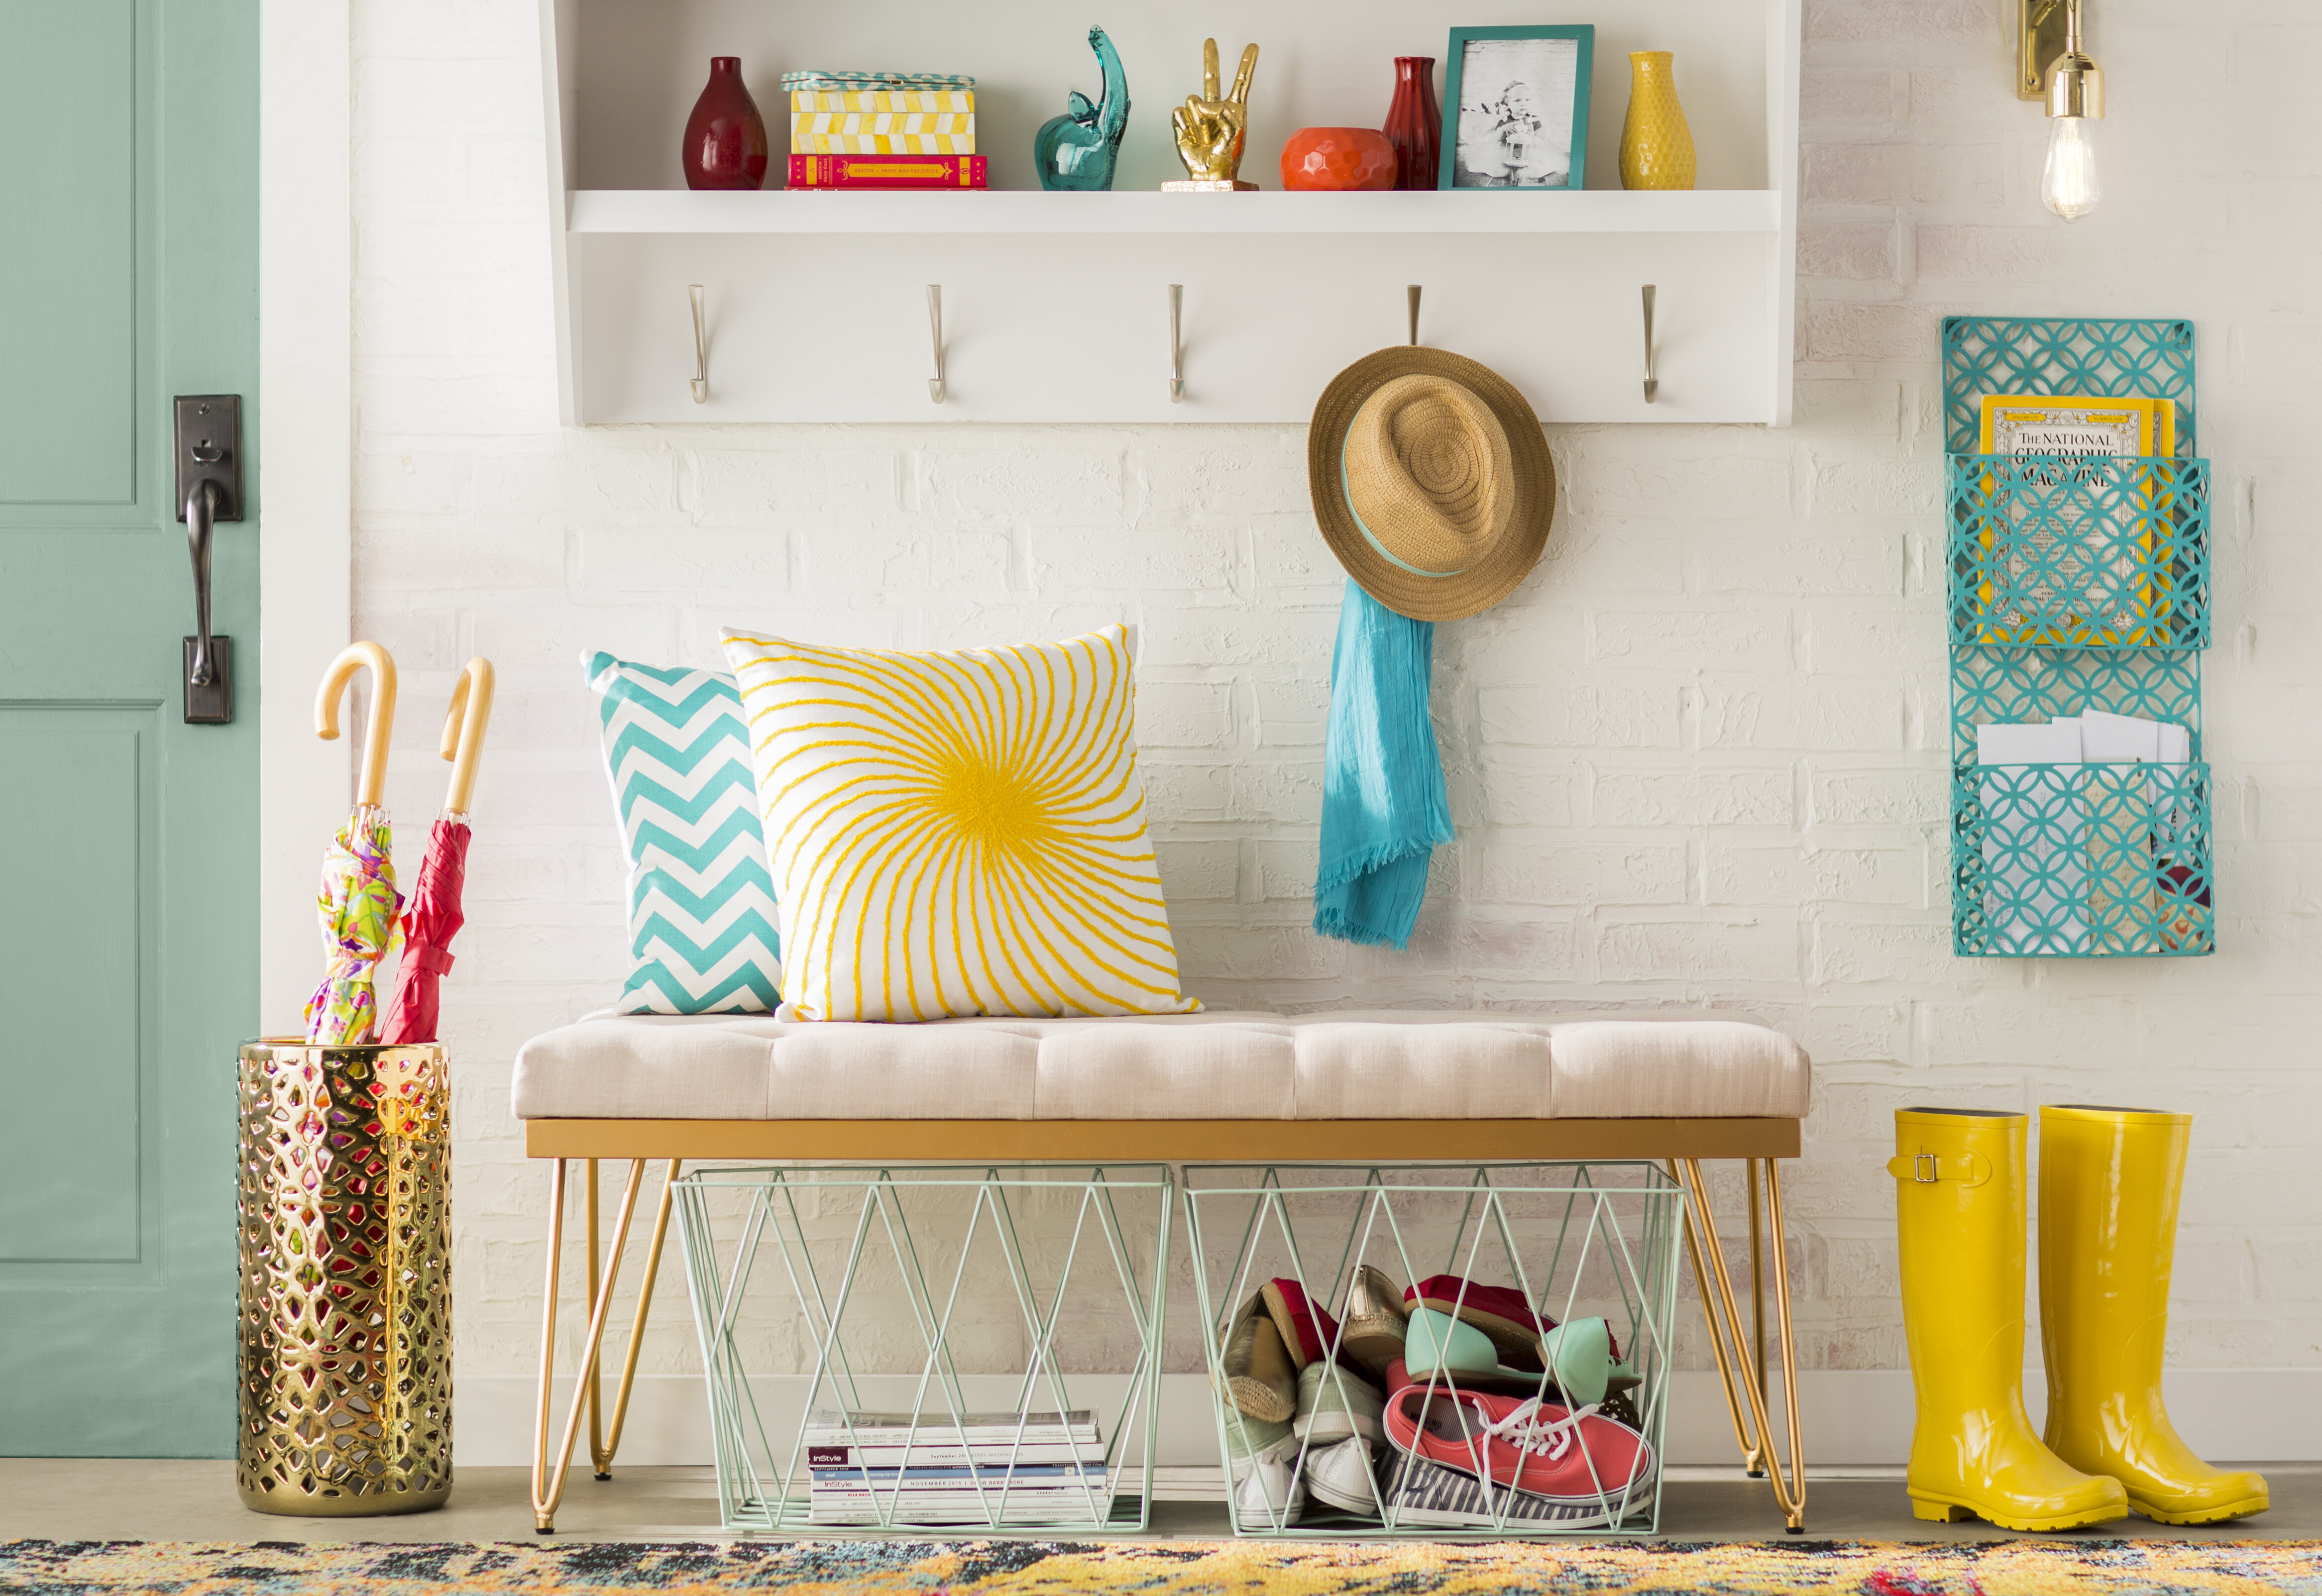 Home Organization Ideas To Get You Started With Photos Wayfair